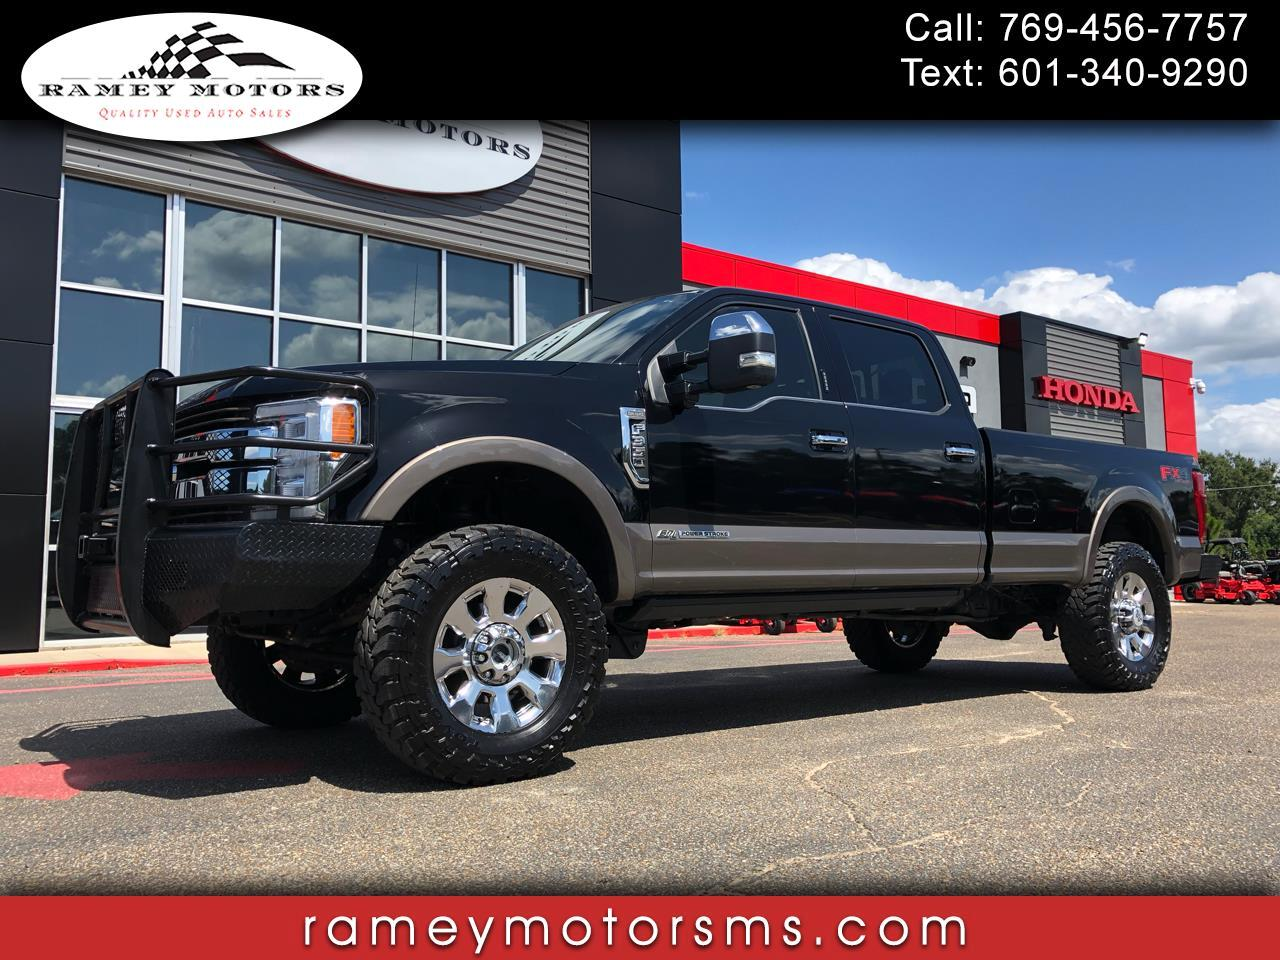 2018 Ford F350 4WD CREWCAB KING RANCH CUSTOM LEVELED